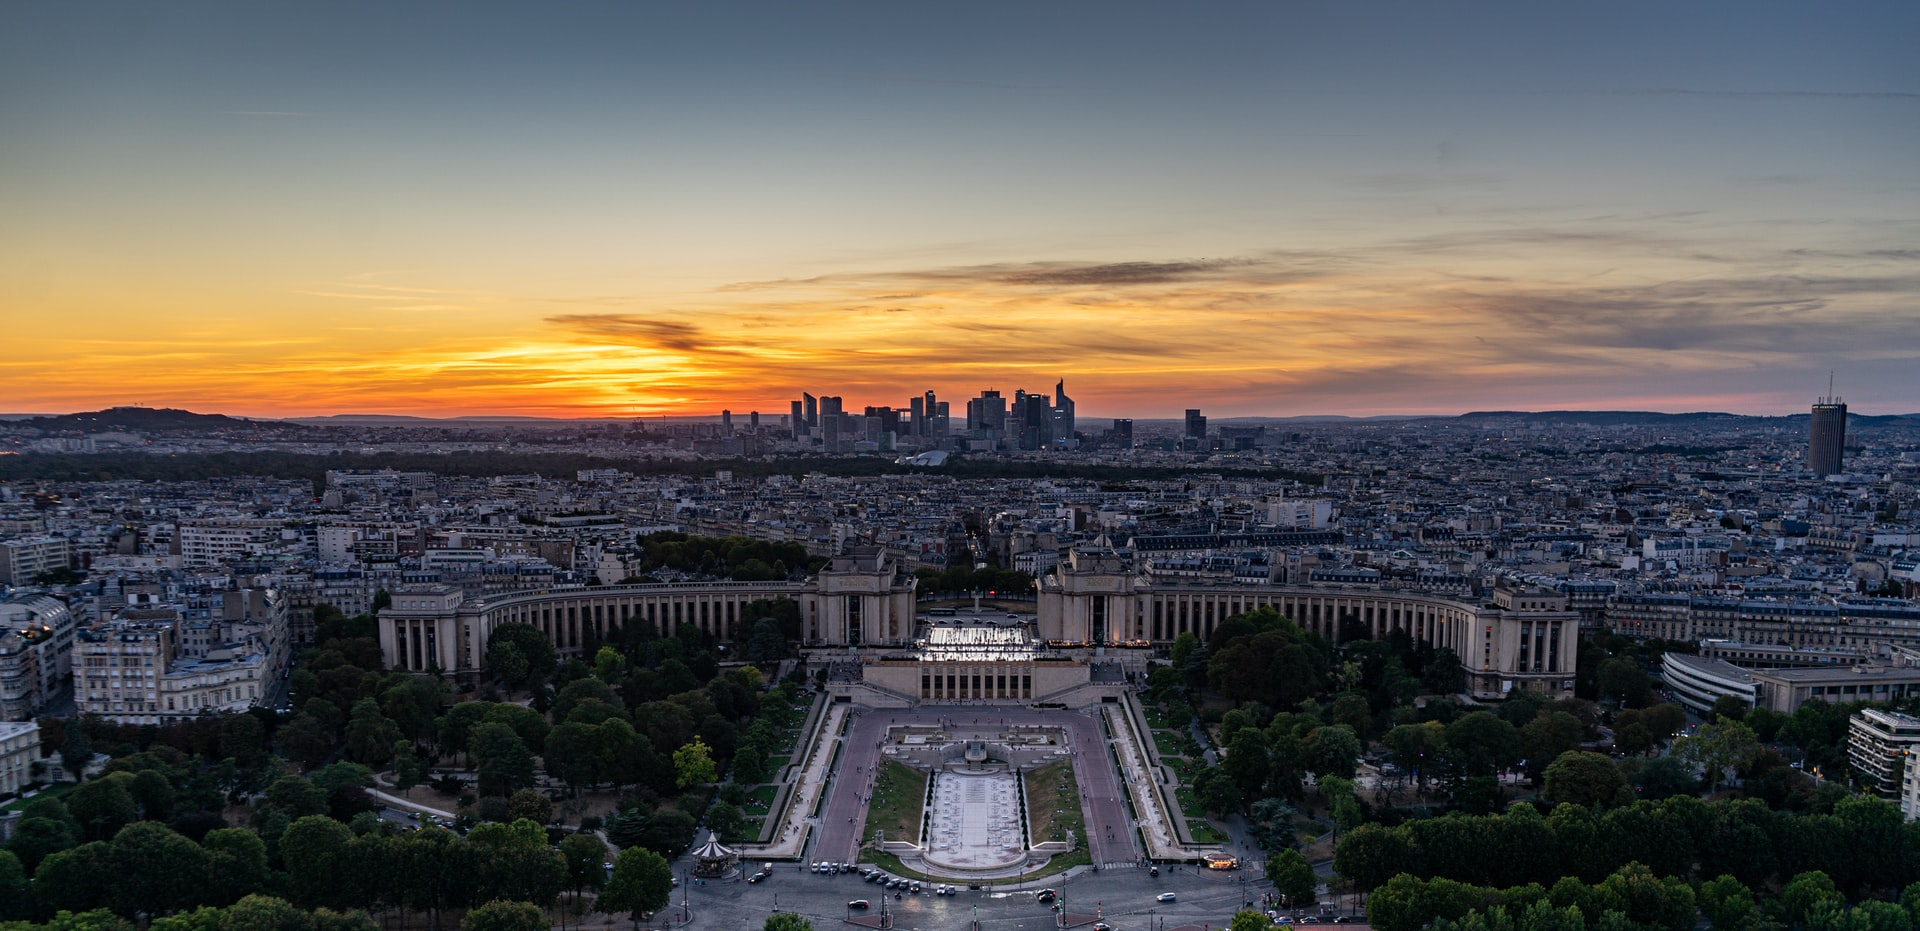 Sunset from the top of the Eiffel Tower